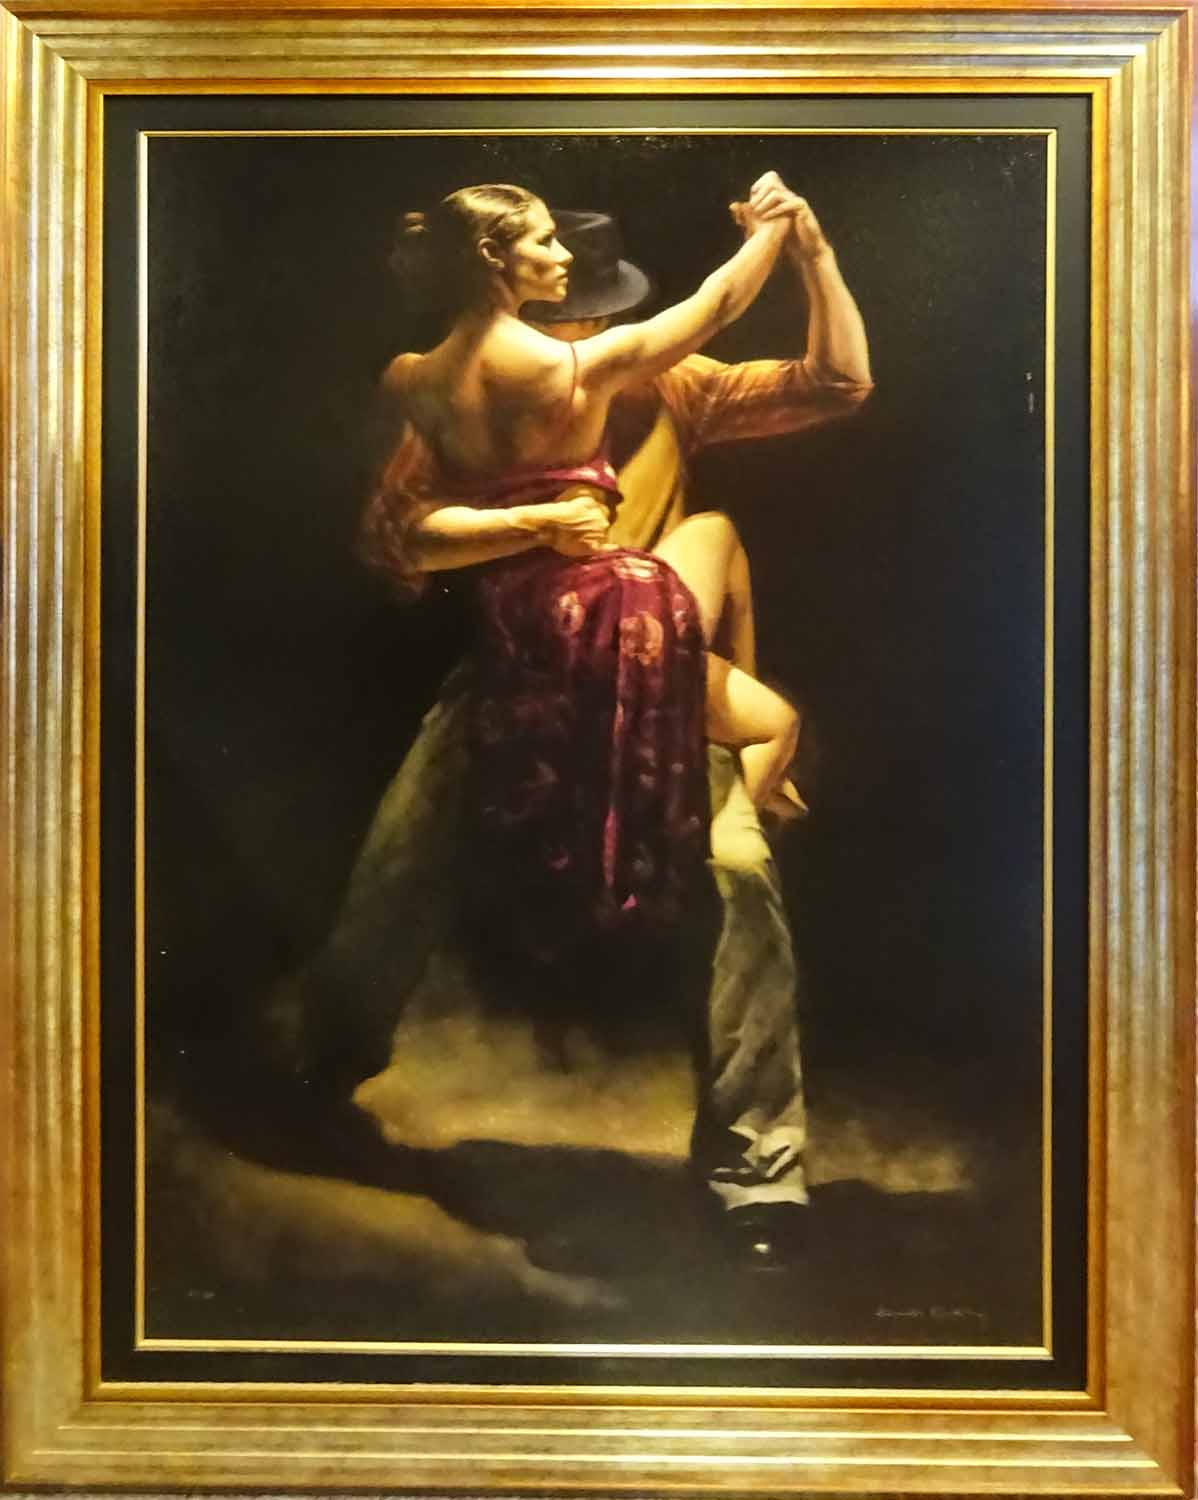 Lot 82 - HAMISH BLAKELY 'Between expressions', giclée print, edition of 150, with certificate verso,